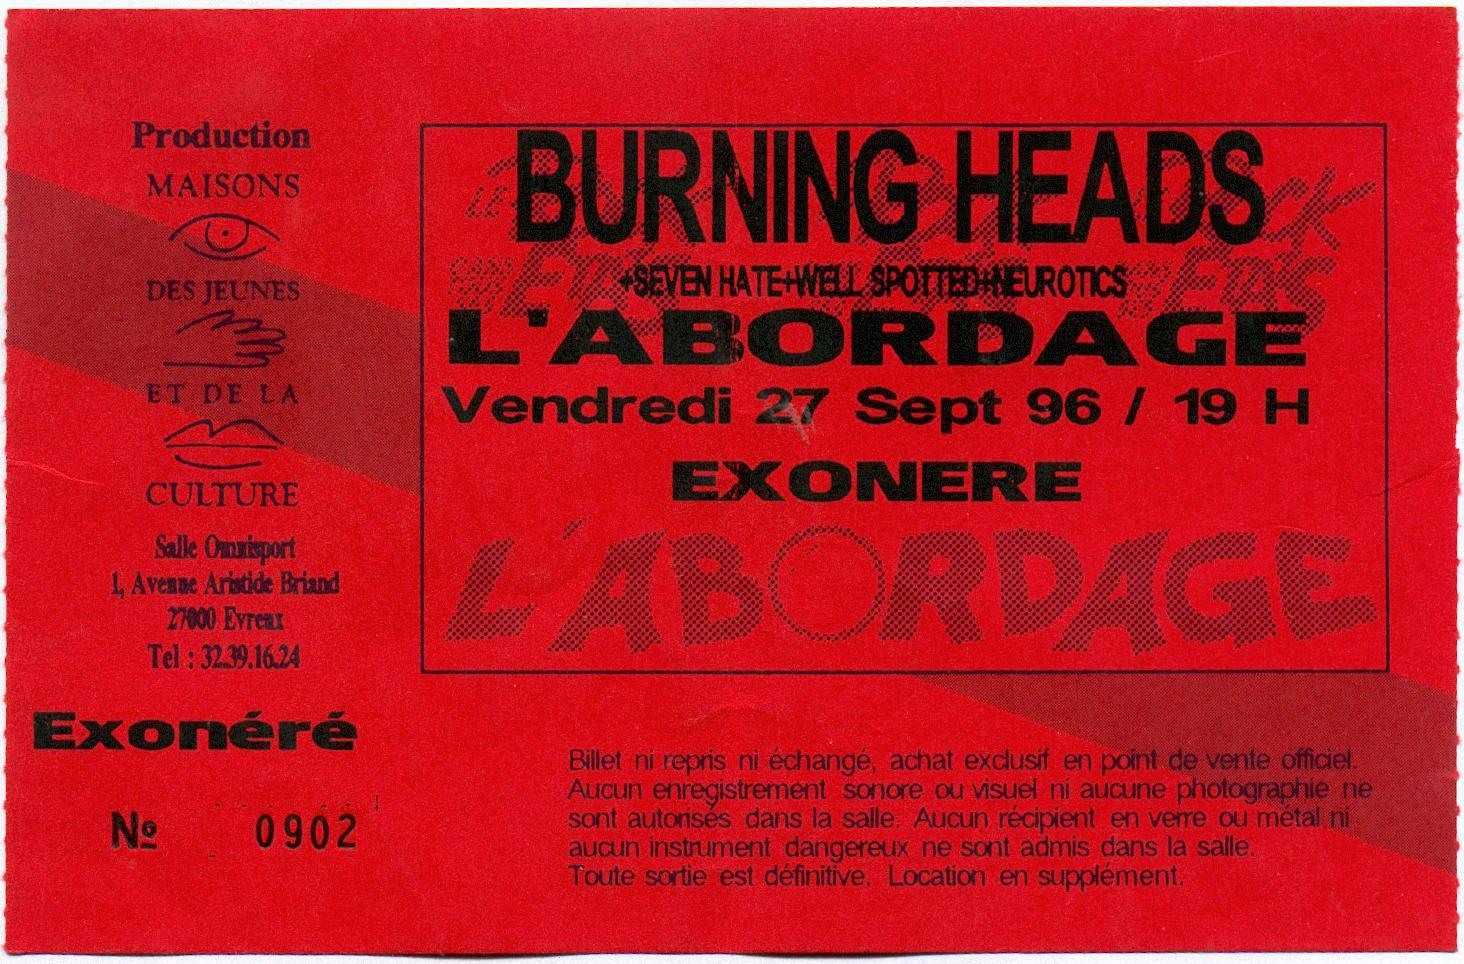 "27 septembre 1996 Neurotics, Well Spoted, Seven hate, Burning heads à Evreux ""l'Abordage"""